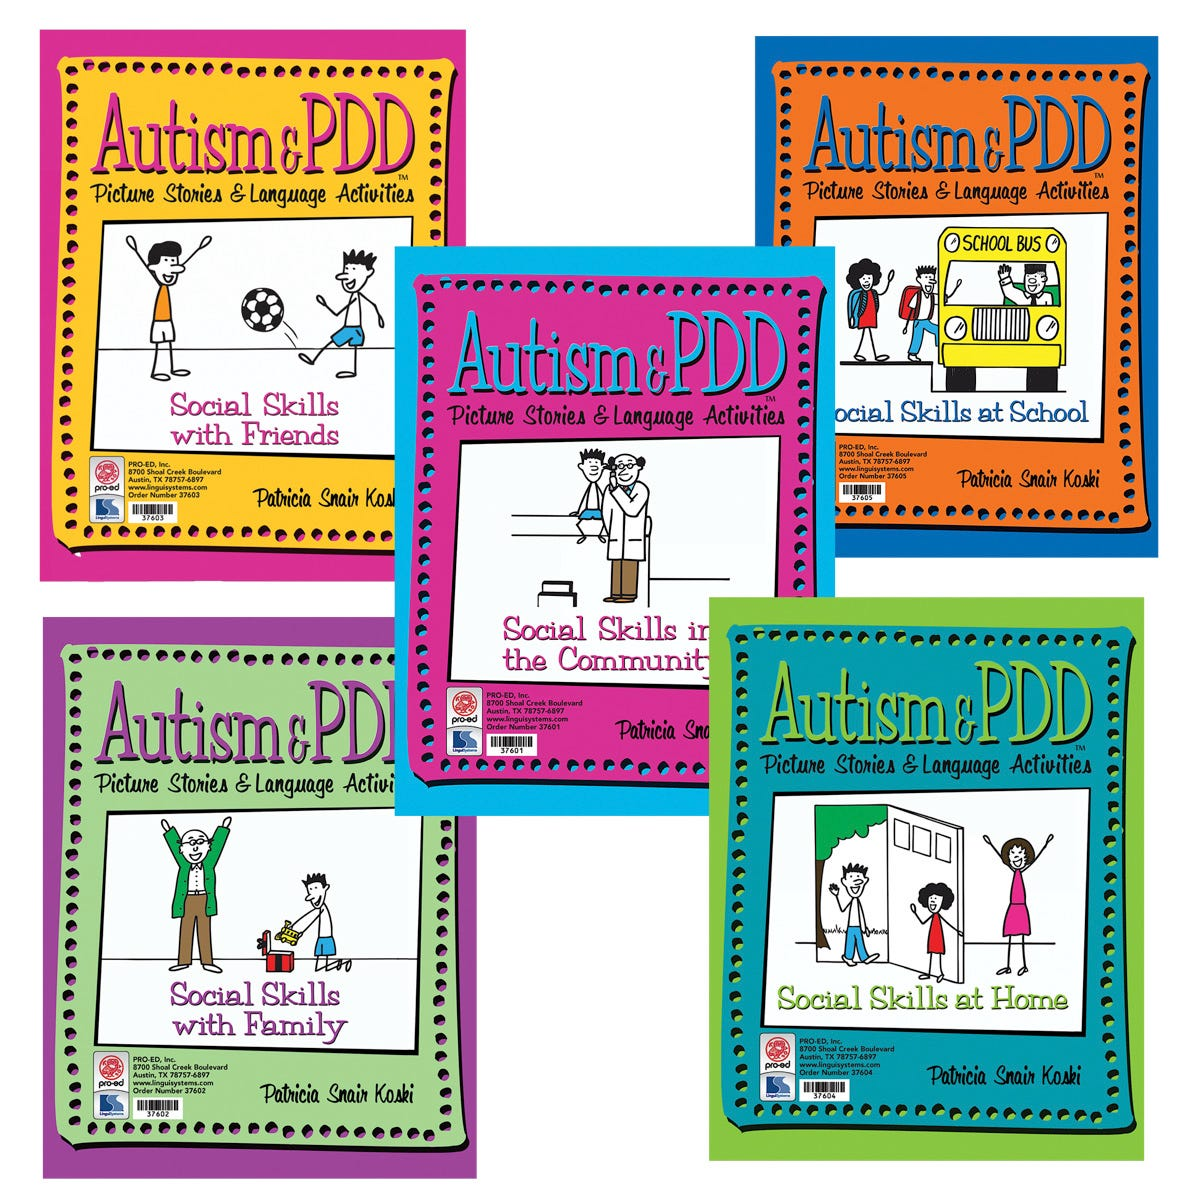 Autism & PDD Picture Stories & Language Activities Social Skills